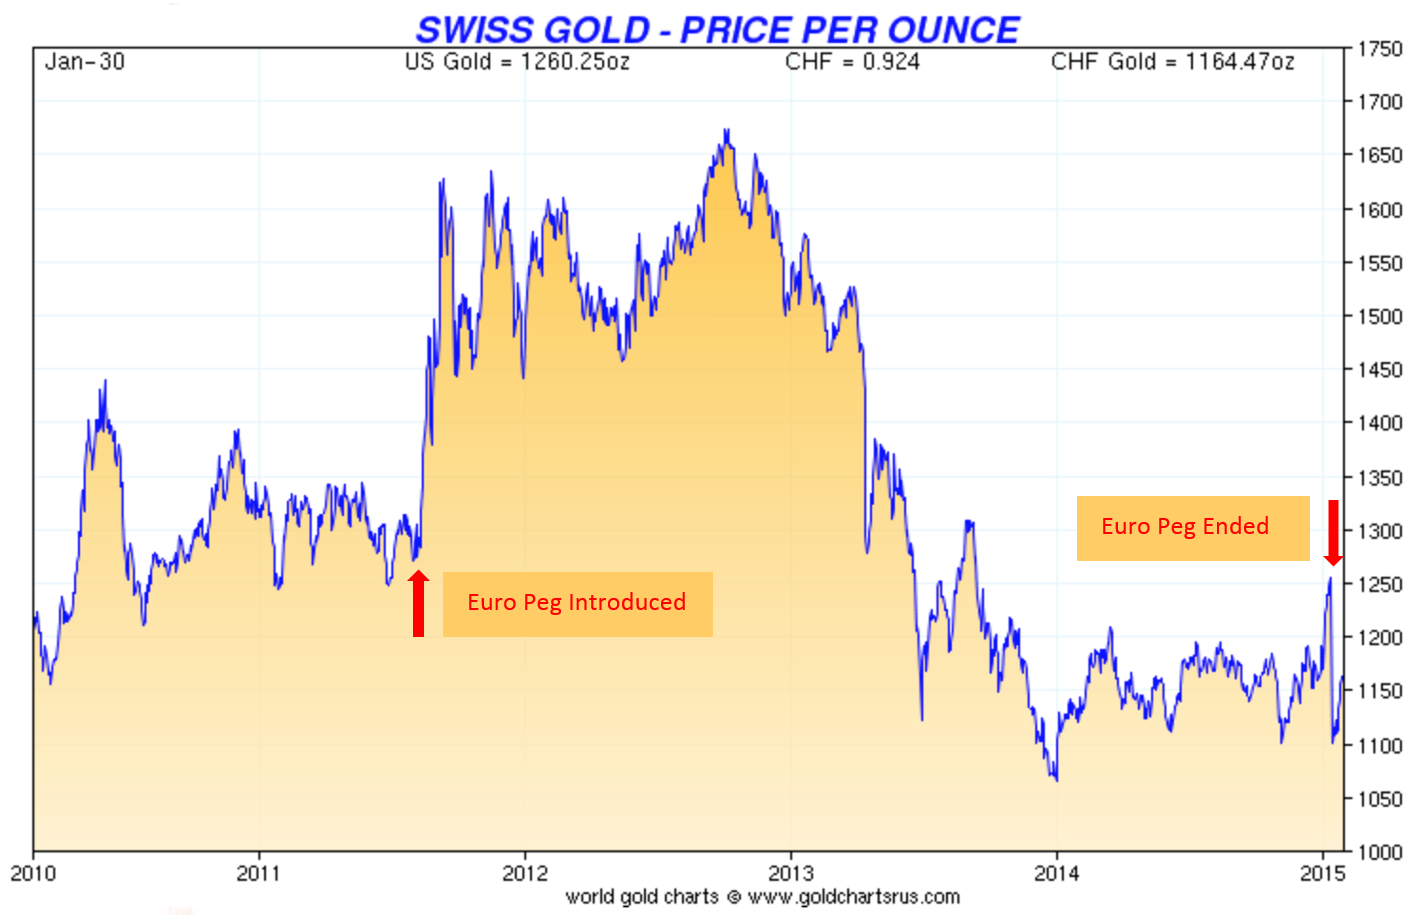 Price of Gold in Swiss Francs since Introduction of the Euro Peg until the End of the Pe